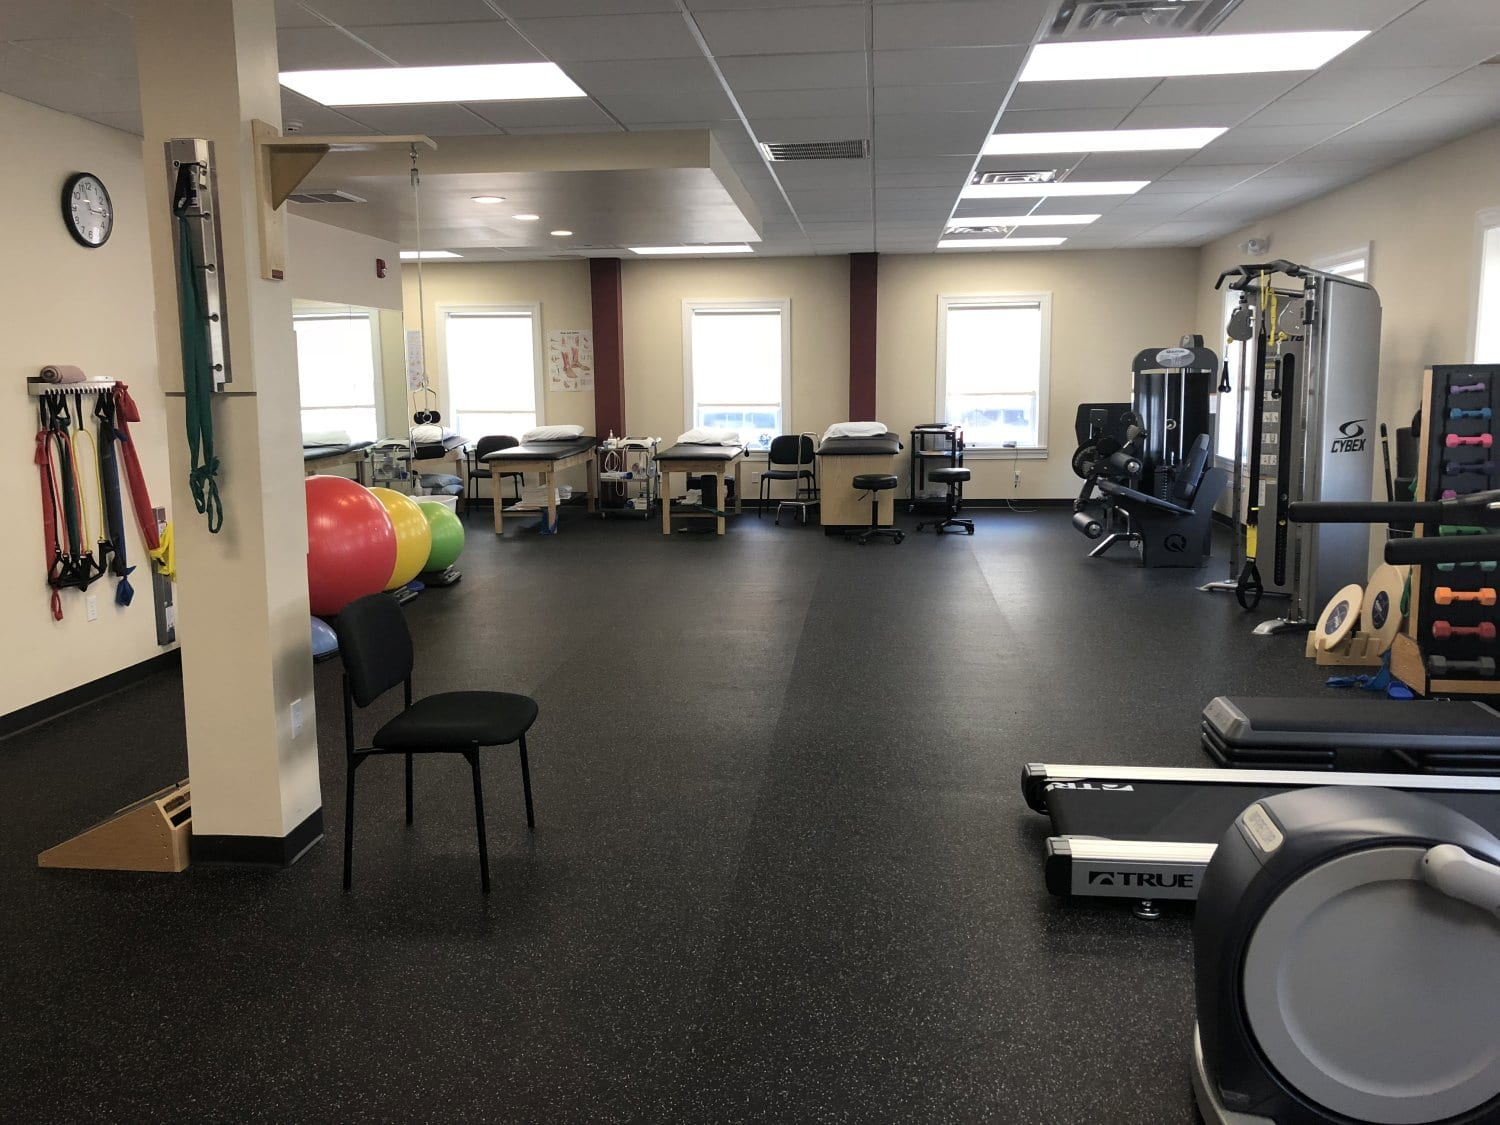 This is an image of the interior of our physical therapy clinic in Westfield New Jersey.